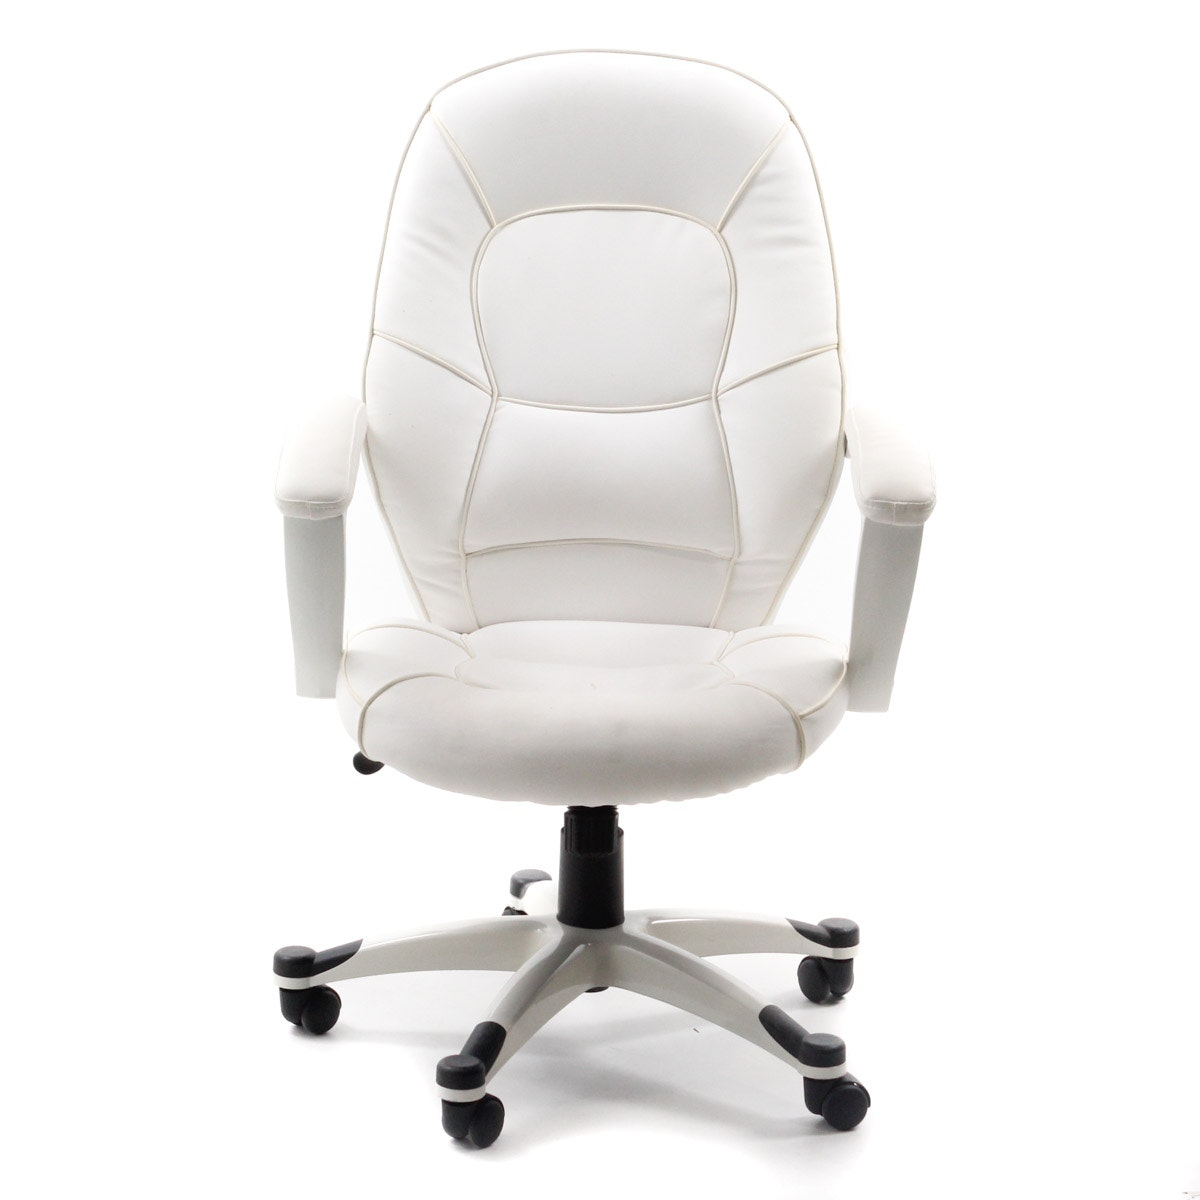 Best of White Vinyl Rolling fice Chair Review - Beautiful rolling office chair Beautiful